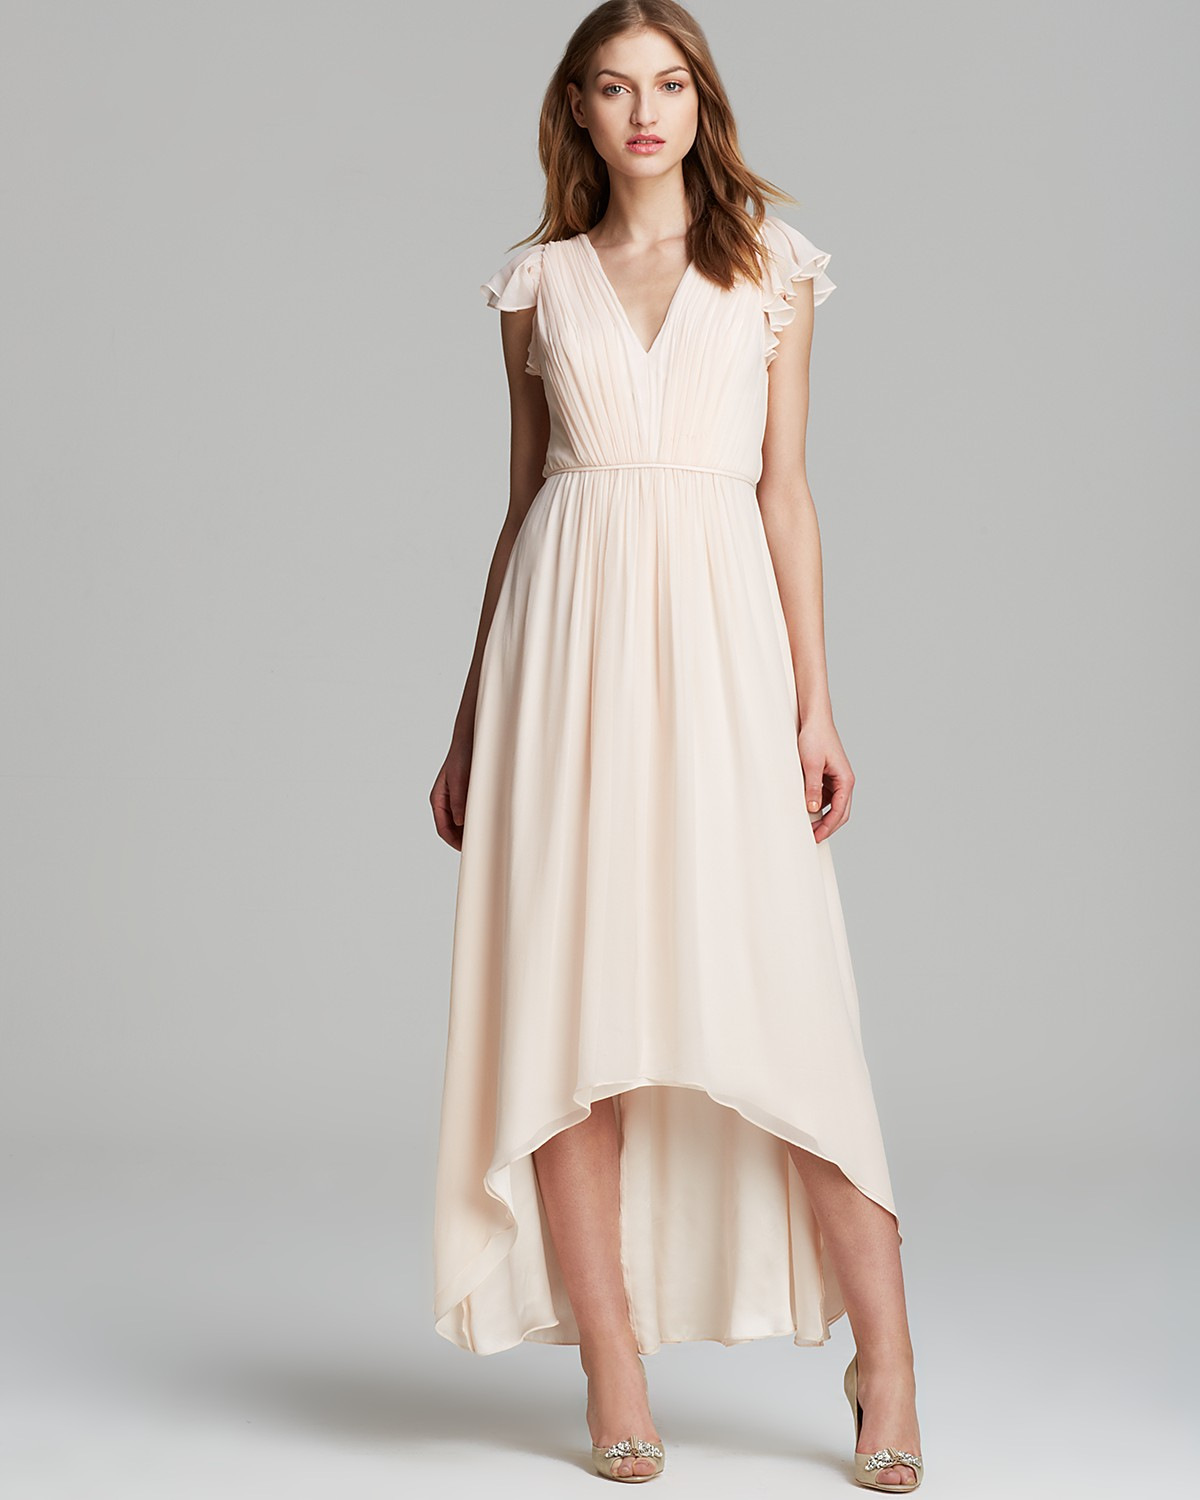 Jill Stuart Dresses Facebook Jill Jill Stuart Dress V